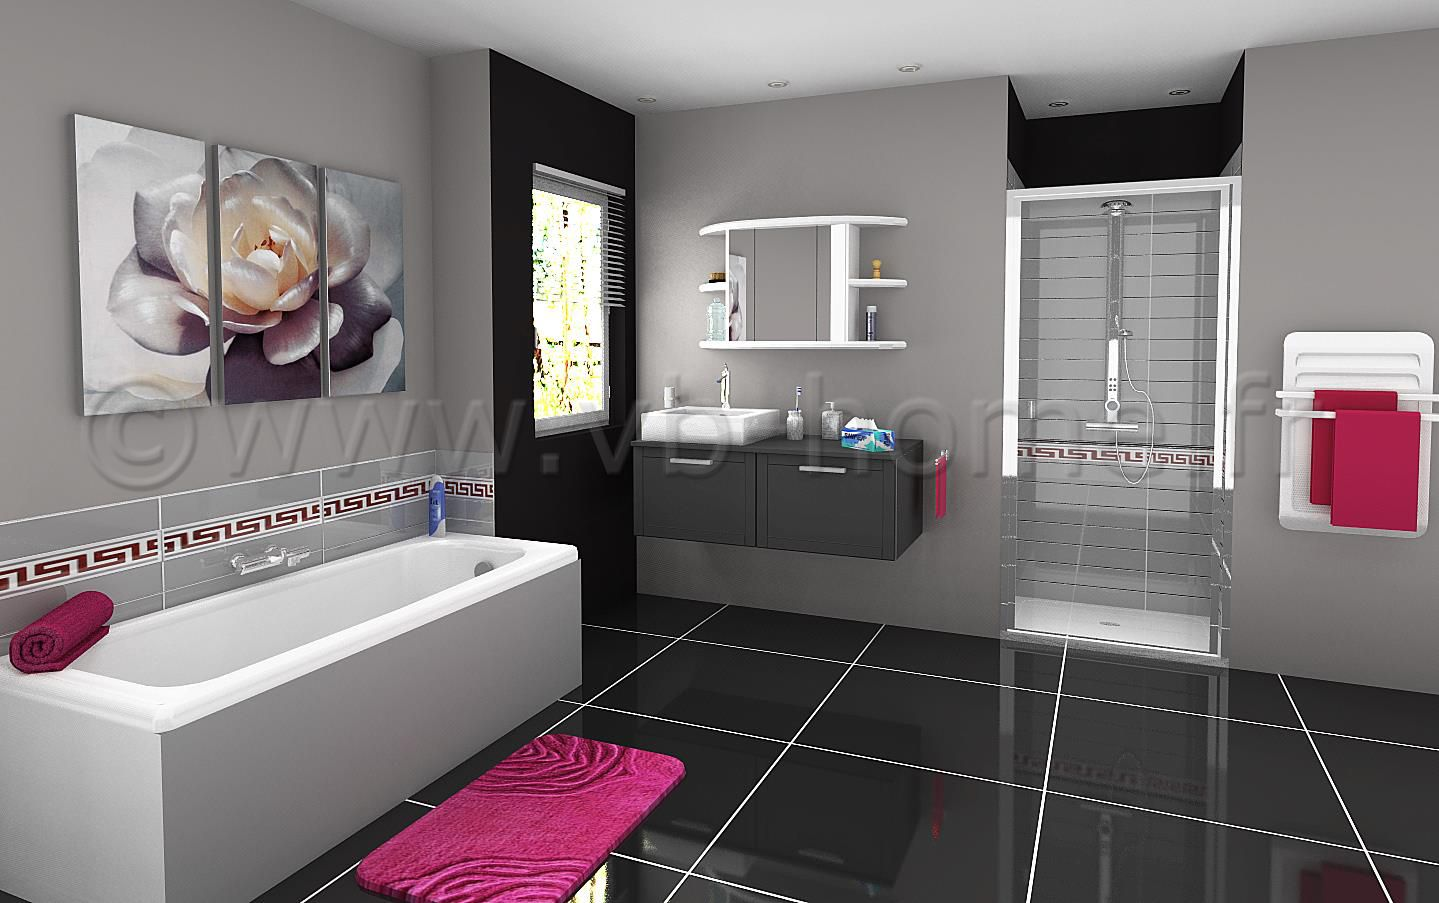 carrelage salle de bain rose et gris. Black Bedroom Furniture Sets. Home Design Ideas